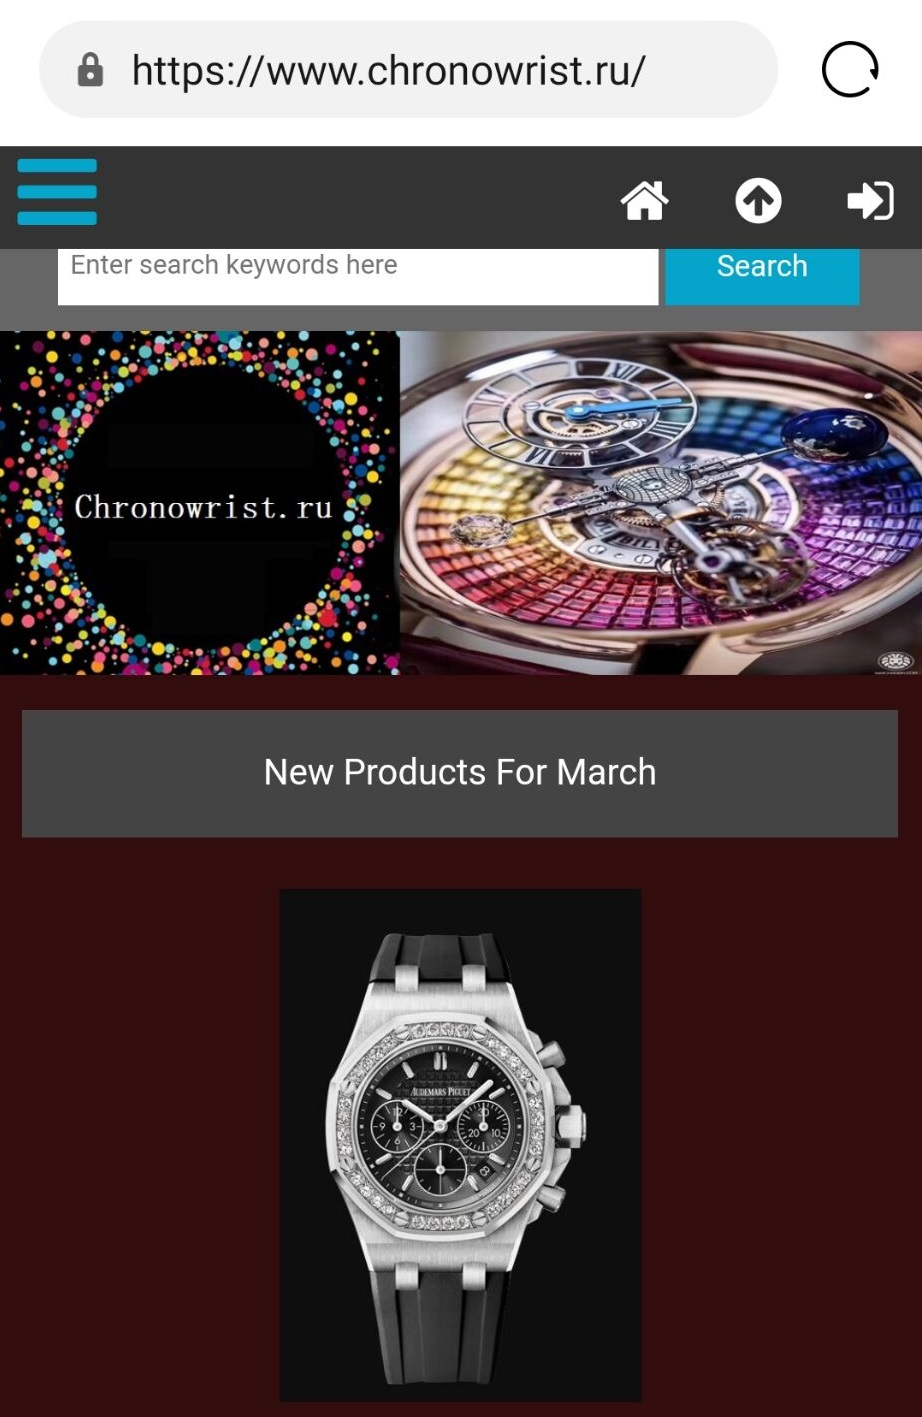 imitation watches